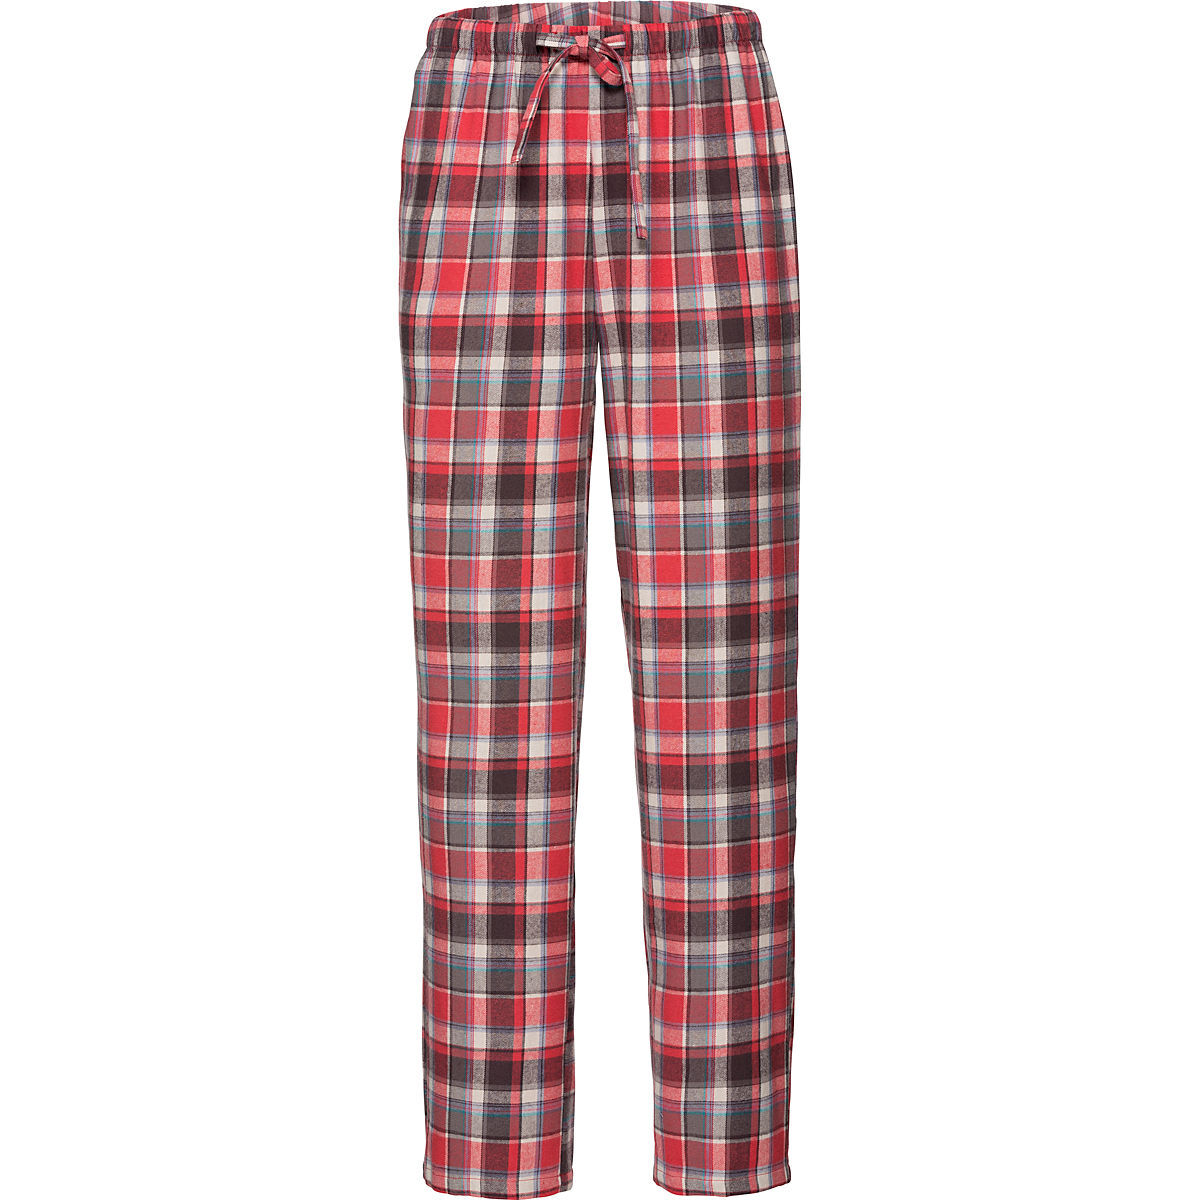 desir e damen flanell pyjama karos rot 40 42 karstadt. Black Bedroom Furniture Sets. Home Design Ideas